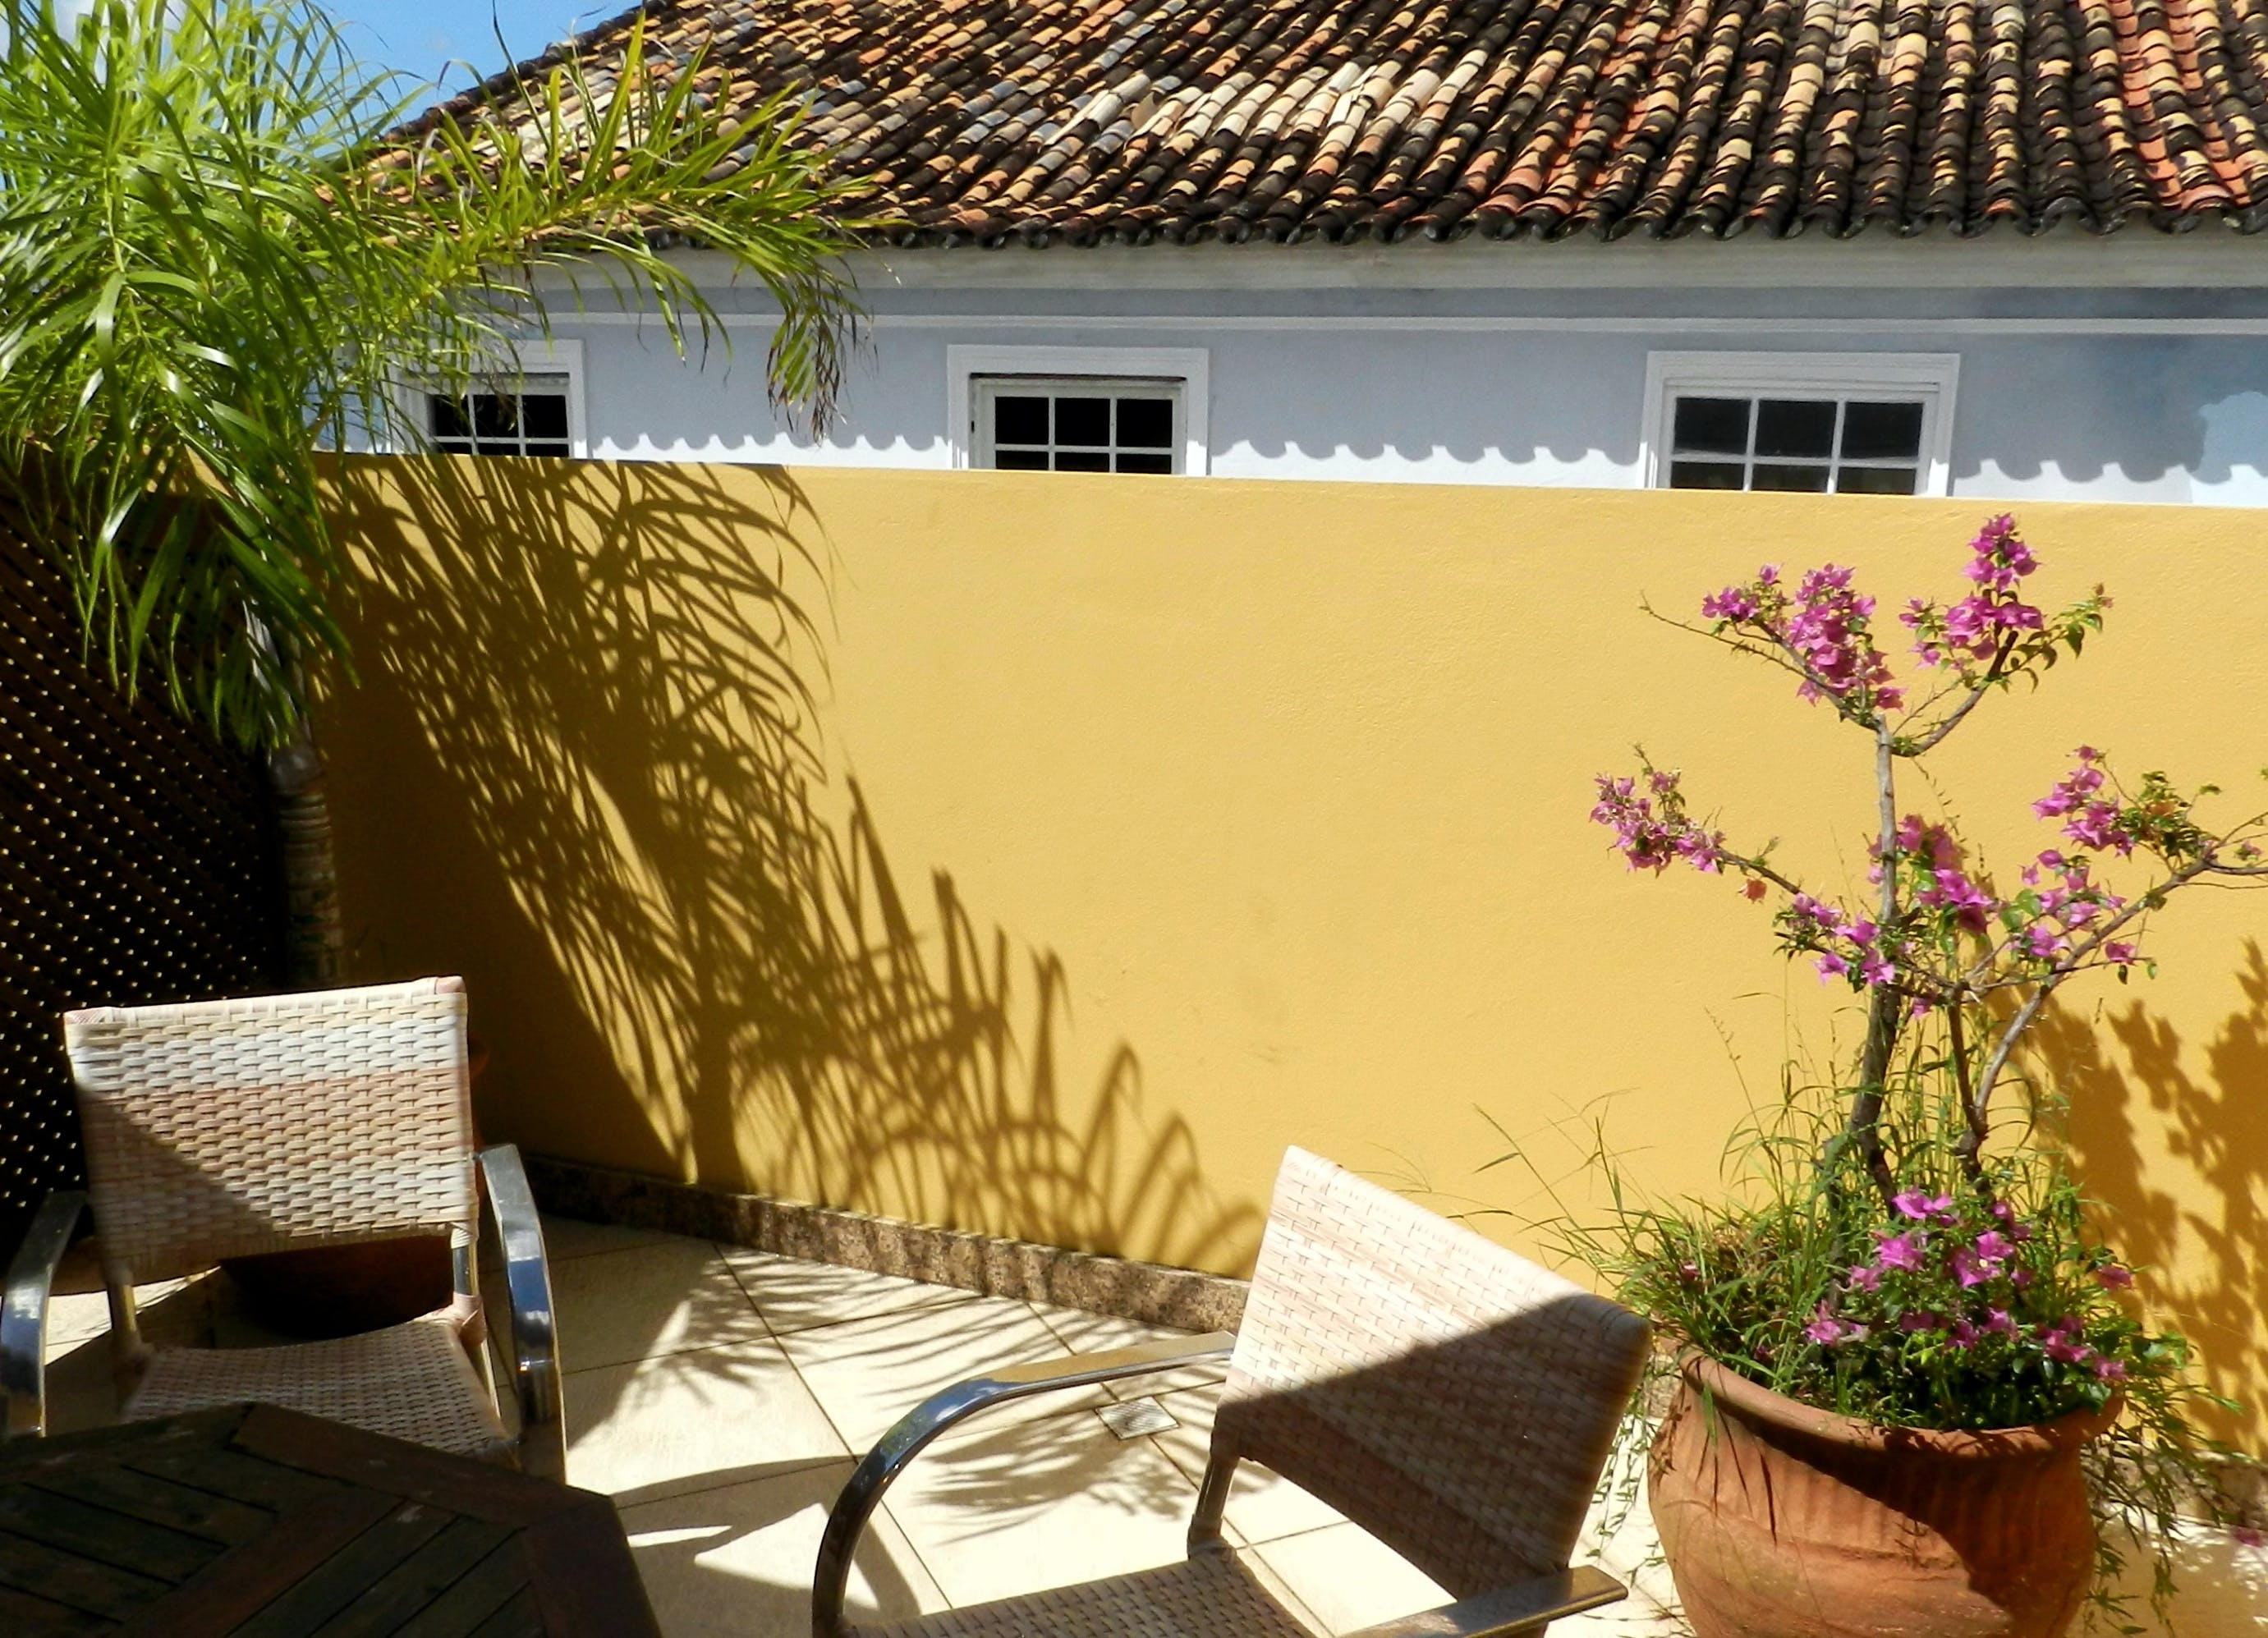 Hotel Casa do Amarelindo Superior Room Varanda and View